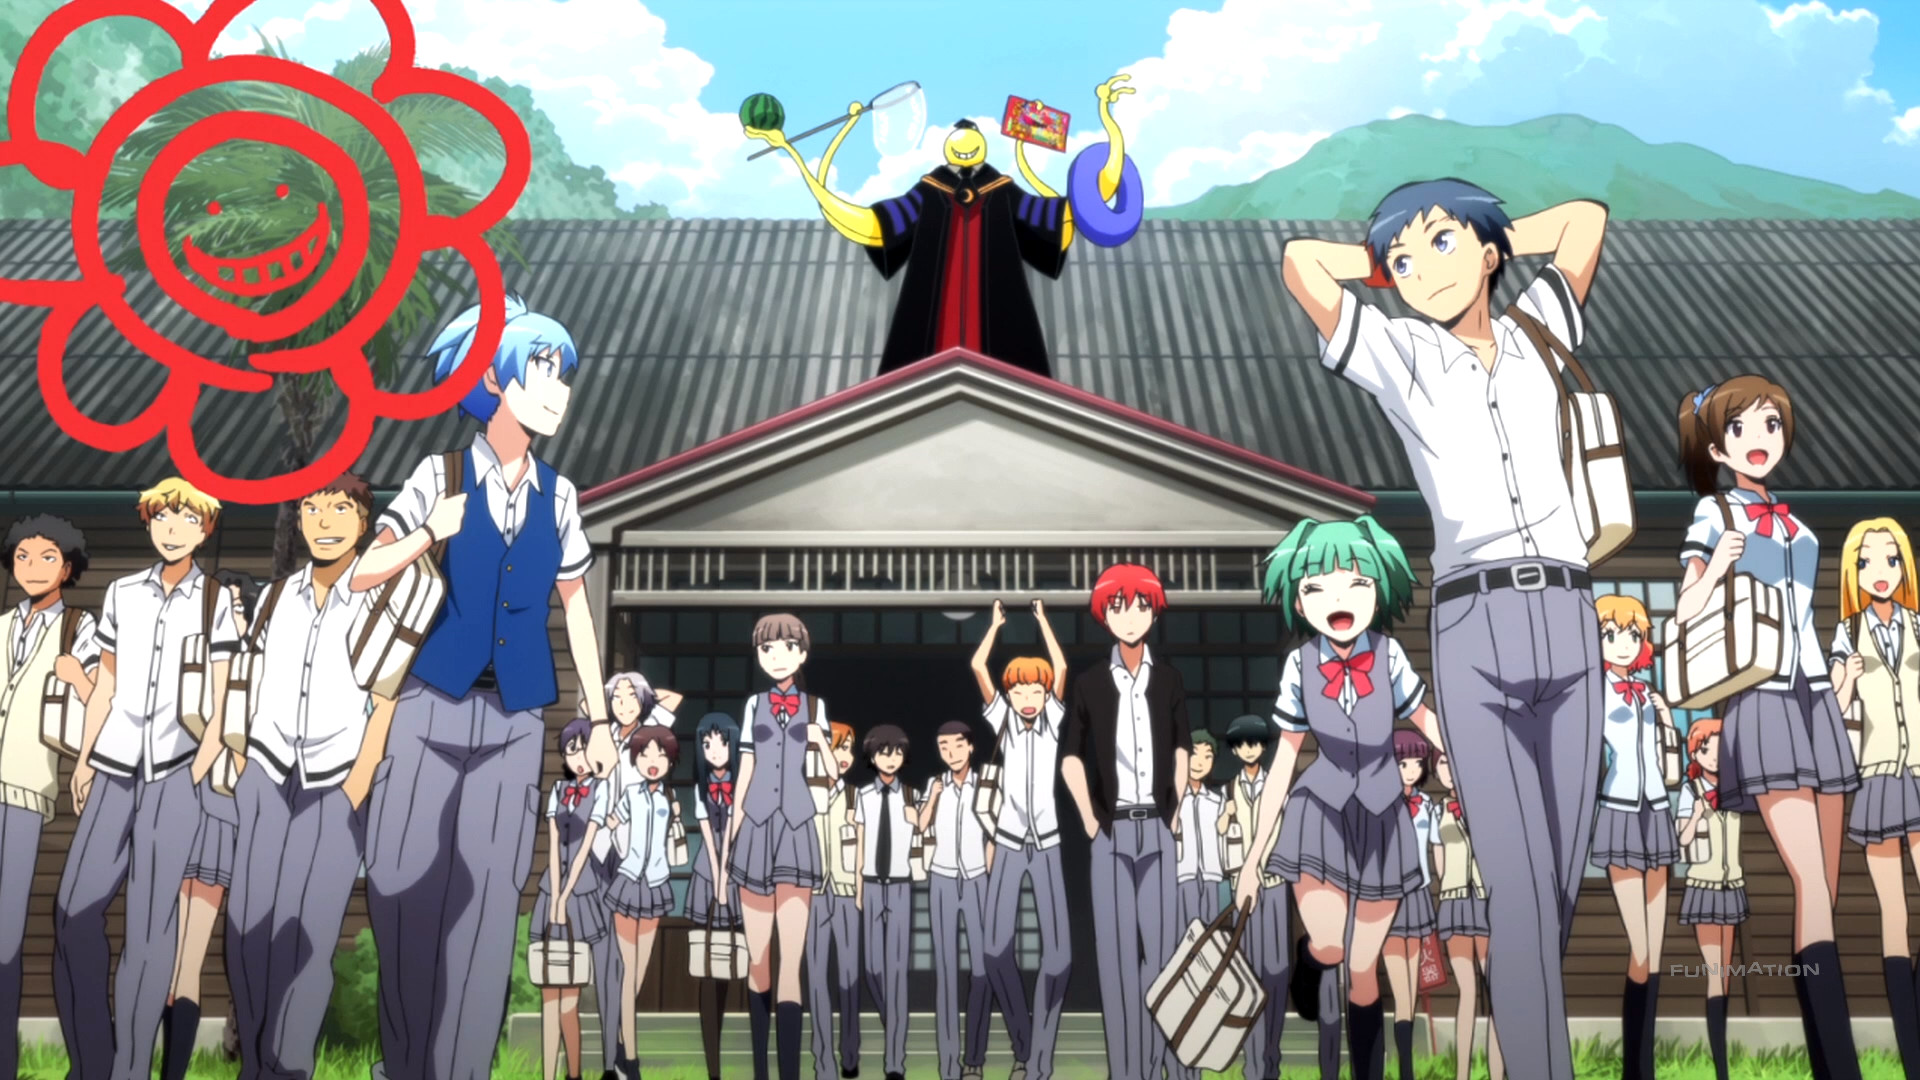 1920x1080 Anime Wallpapers Assasination Classroom HD 4K Download For Mobile iPhone &  PC